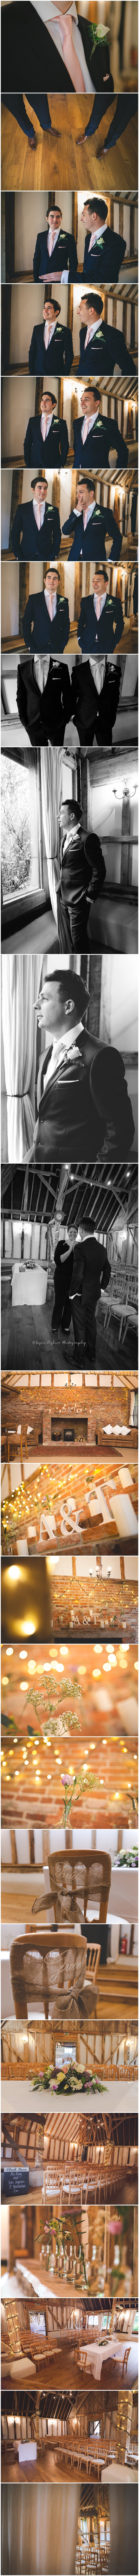 Tom & Abi_Susie Fisher Photography-49.jpg